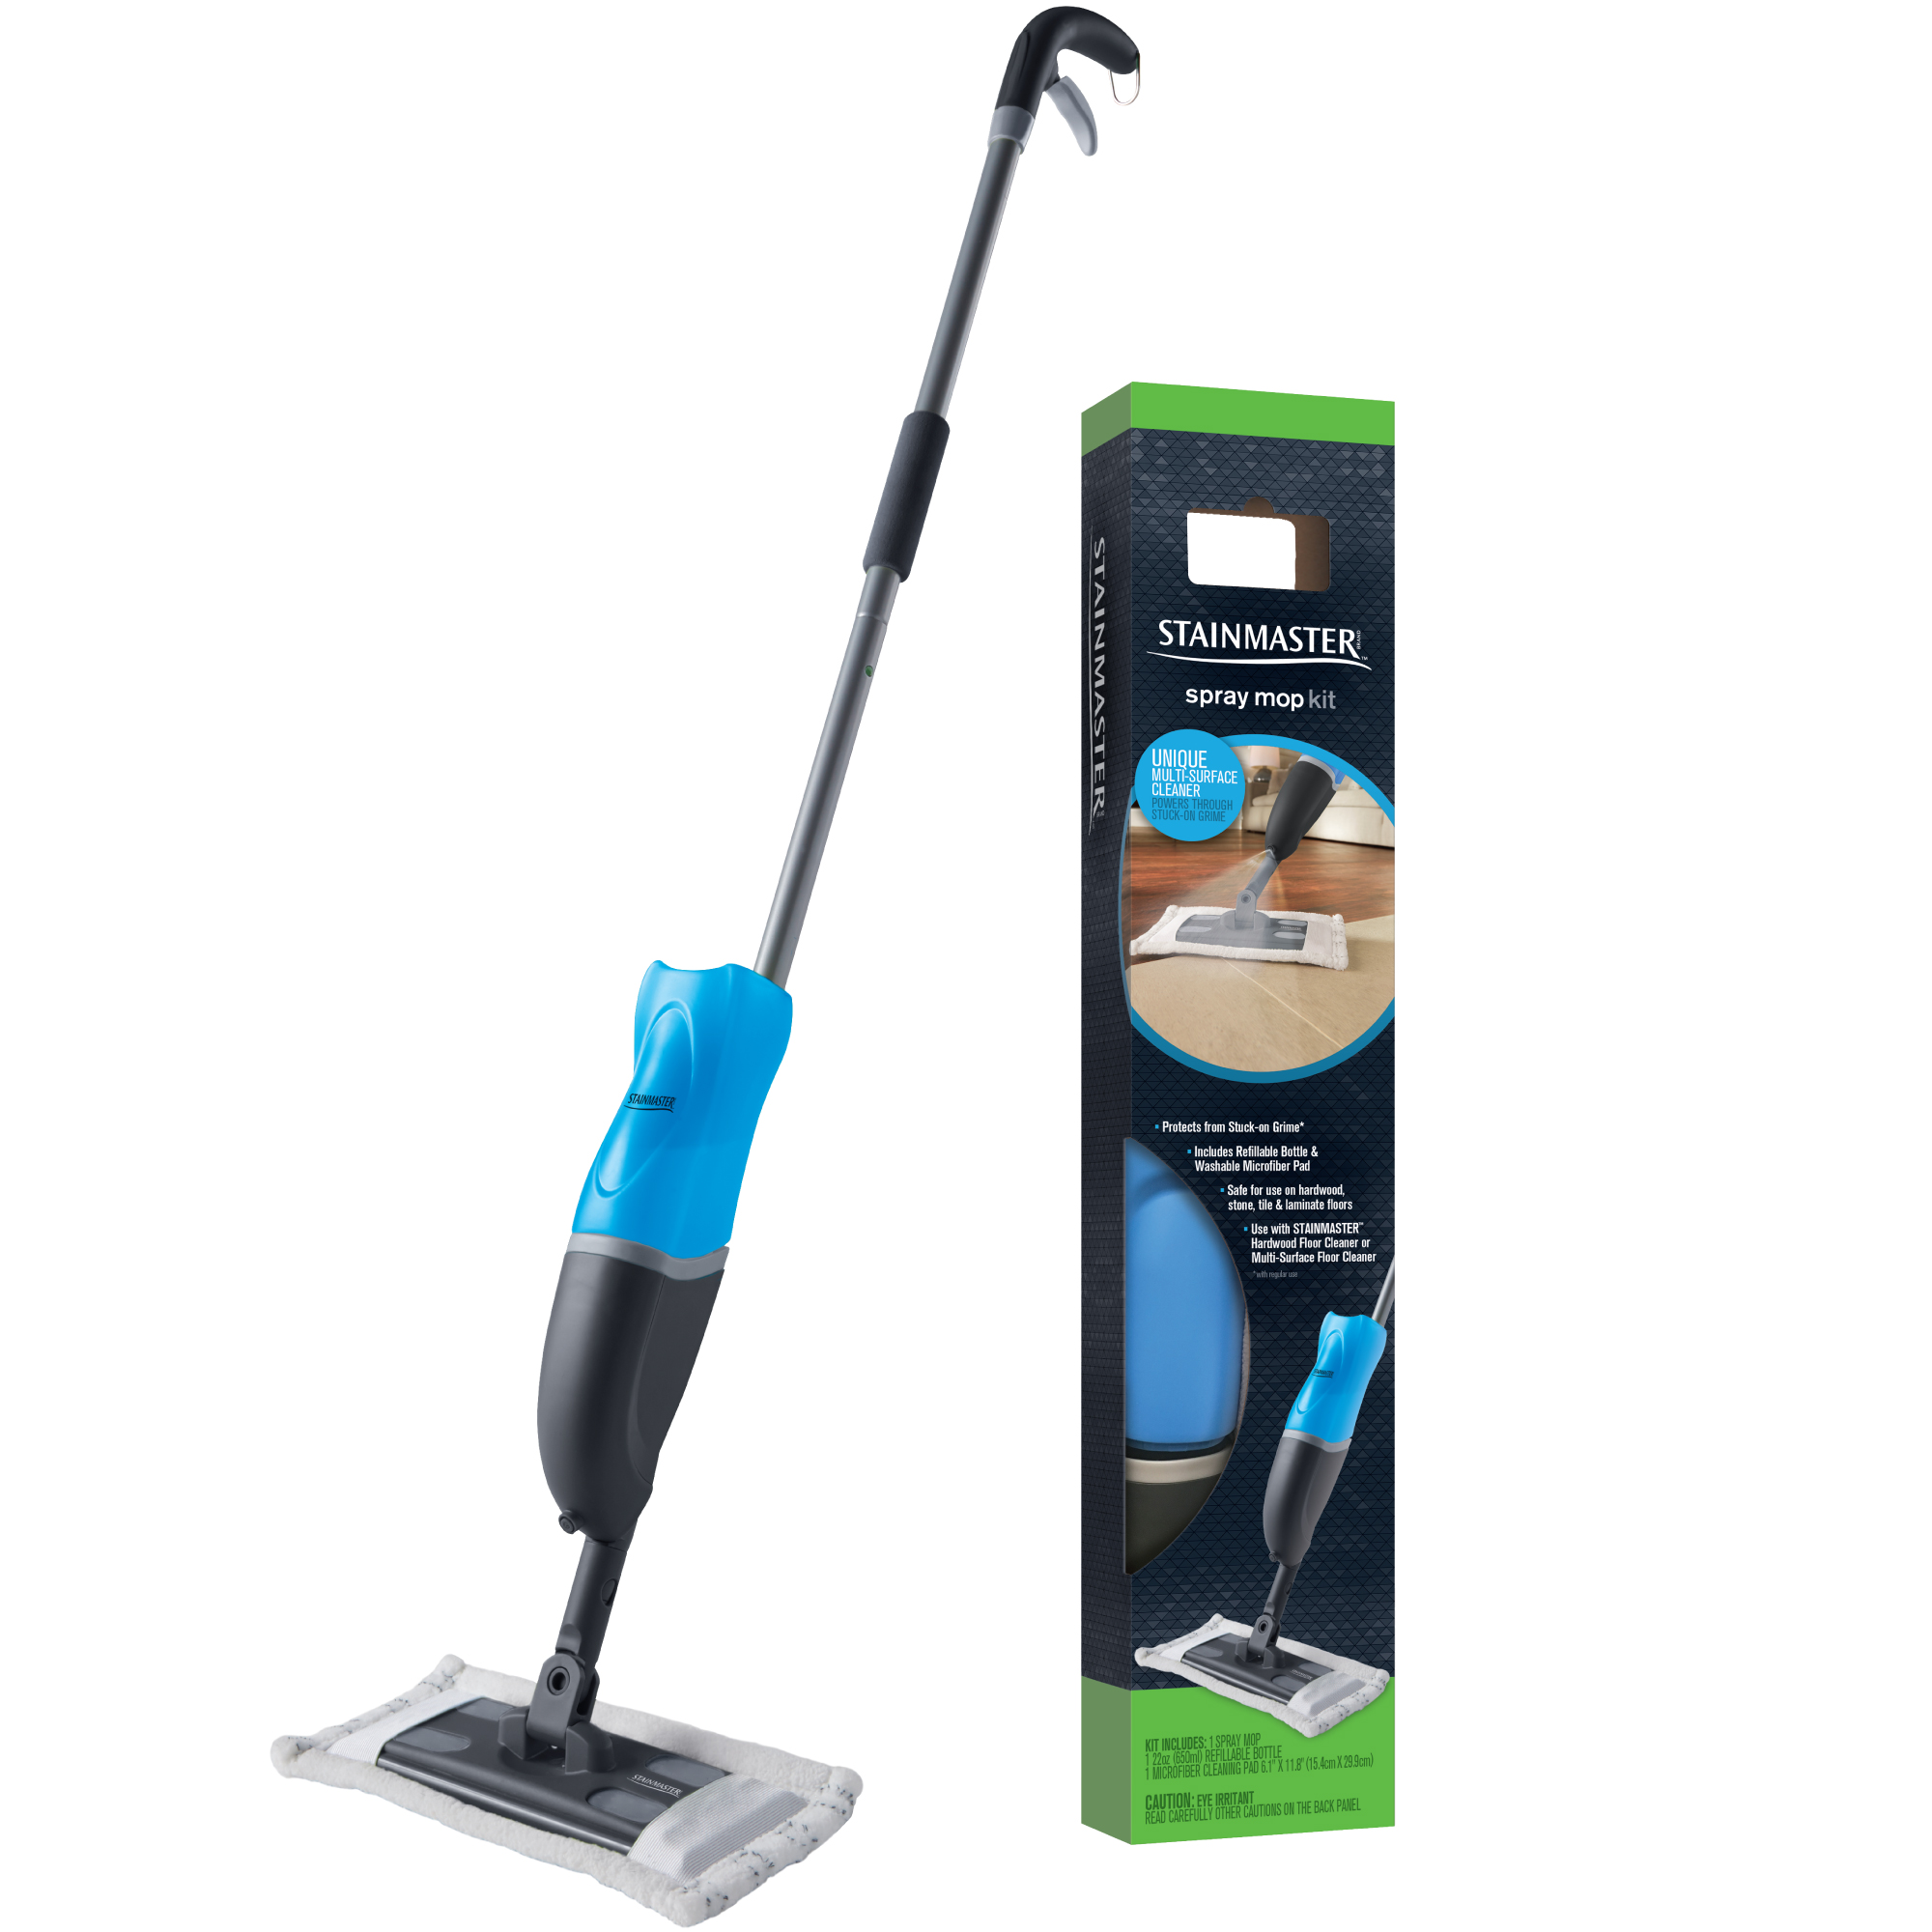 Stainmaster Spray Mop Kit Includes Refillable Bottle Washable